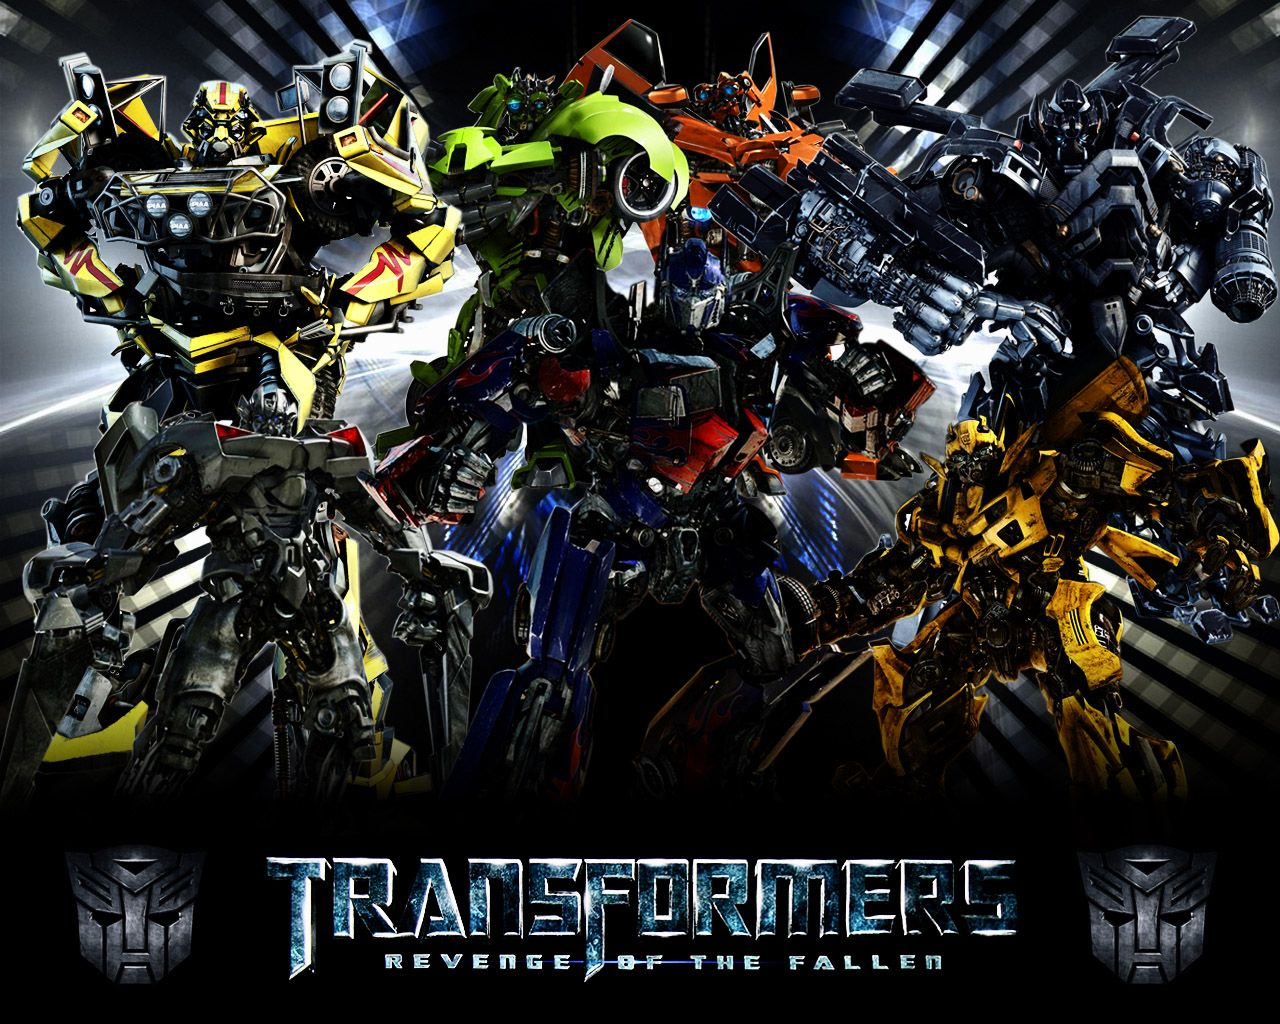 HD Wallpaper of X Autobots Group, Desktop Wallpaper X Autobots Group